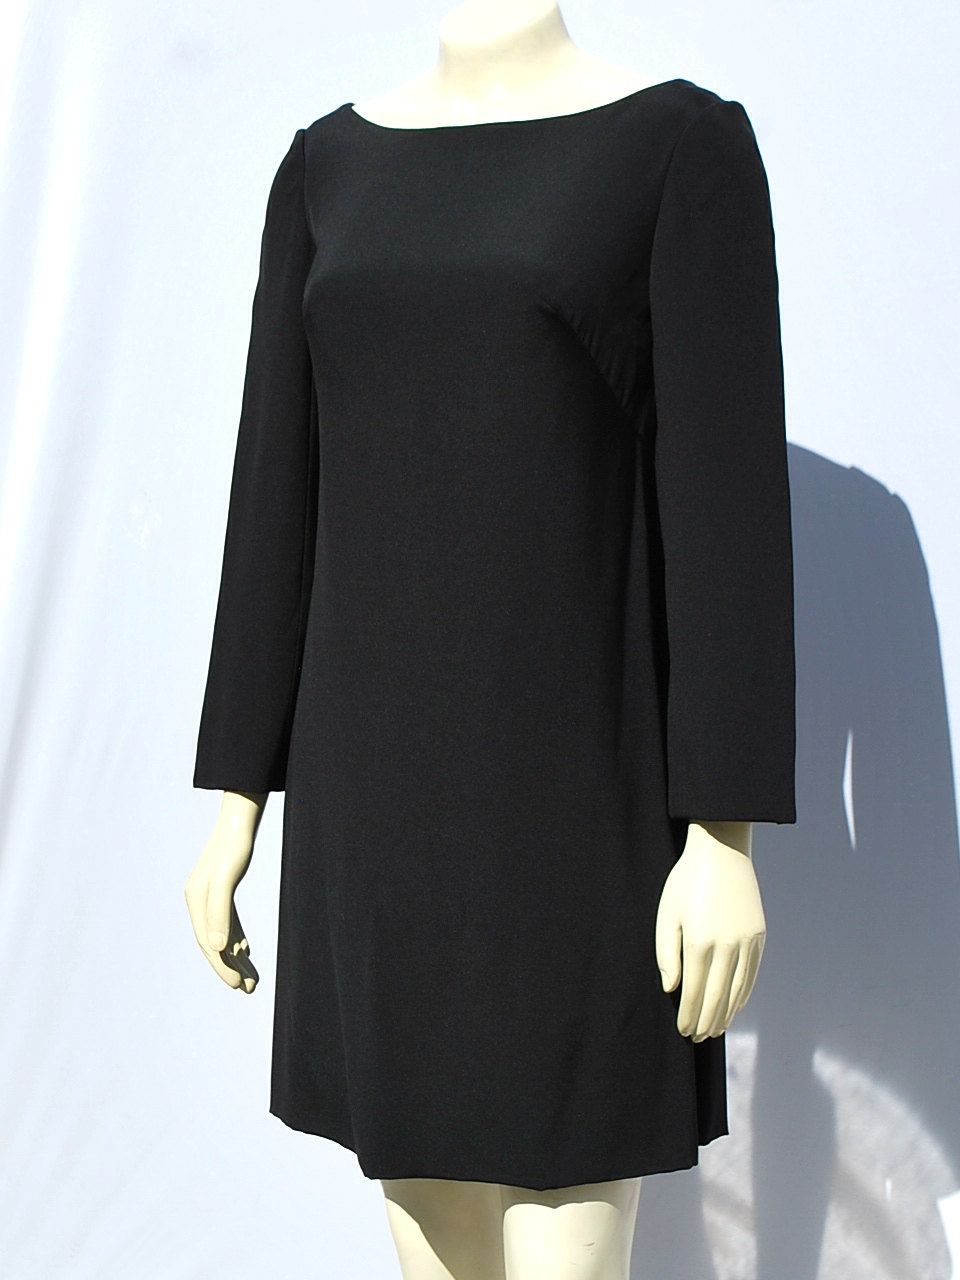 Vintage us malcome starr mini dress sexy short lbd cocktail party